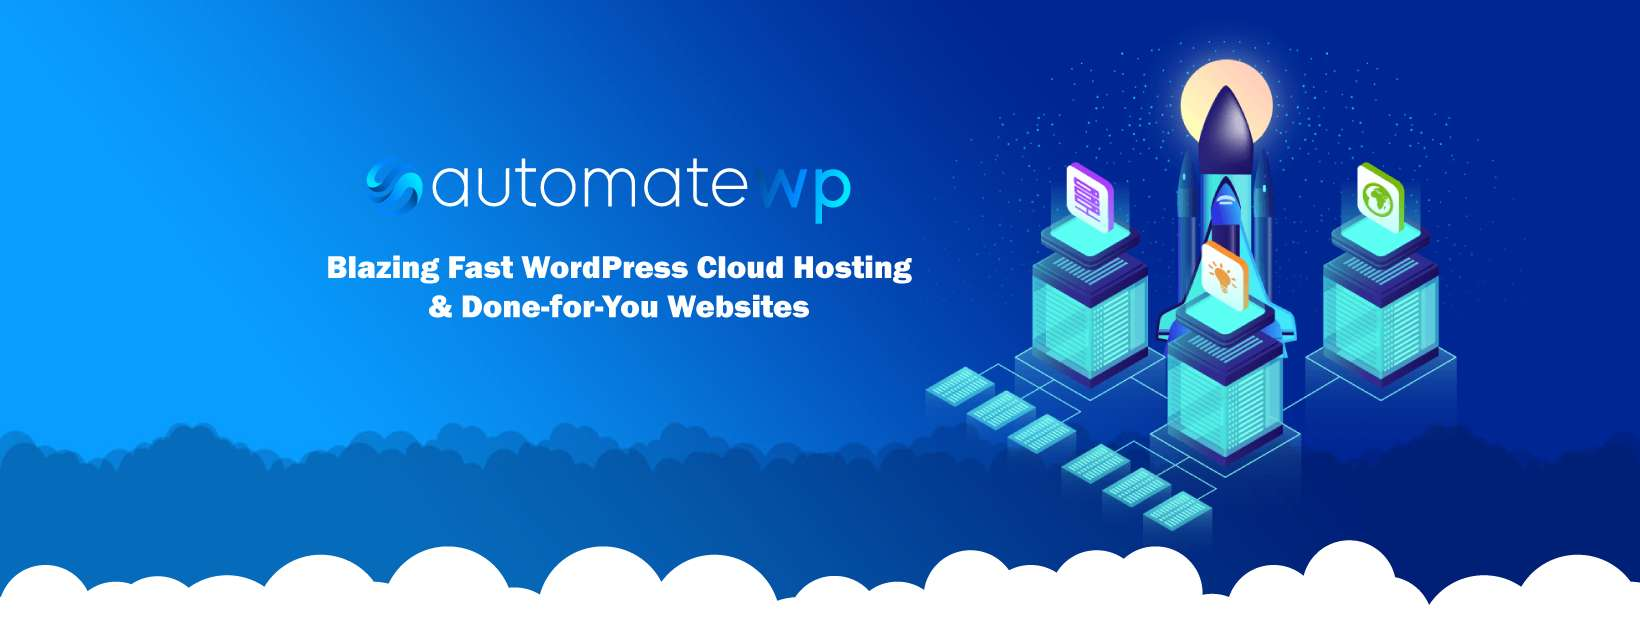 automate-wp-review